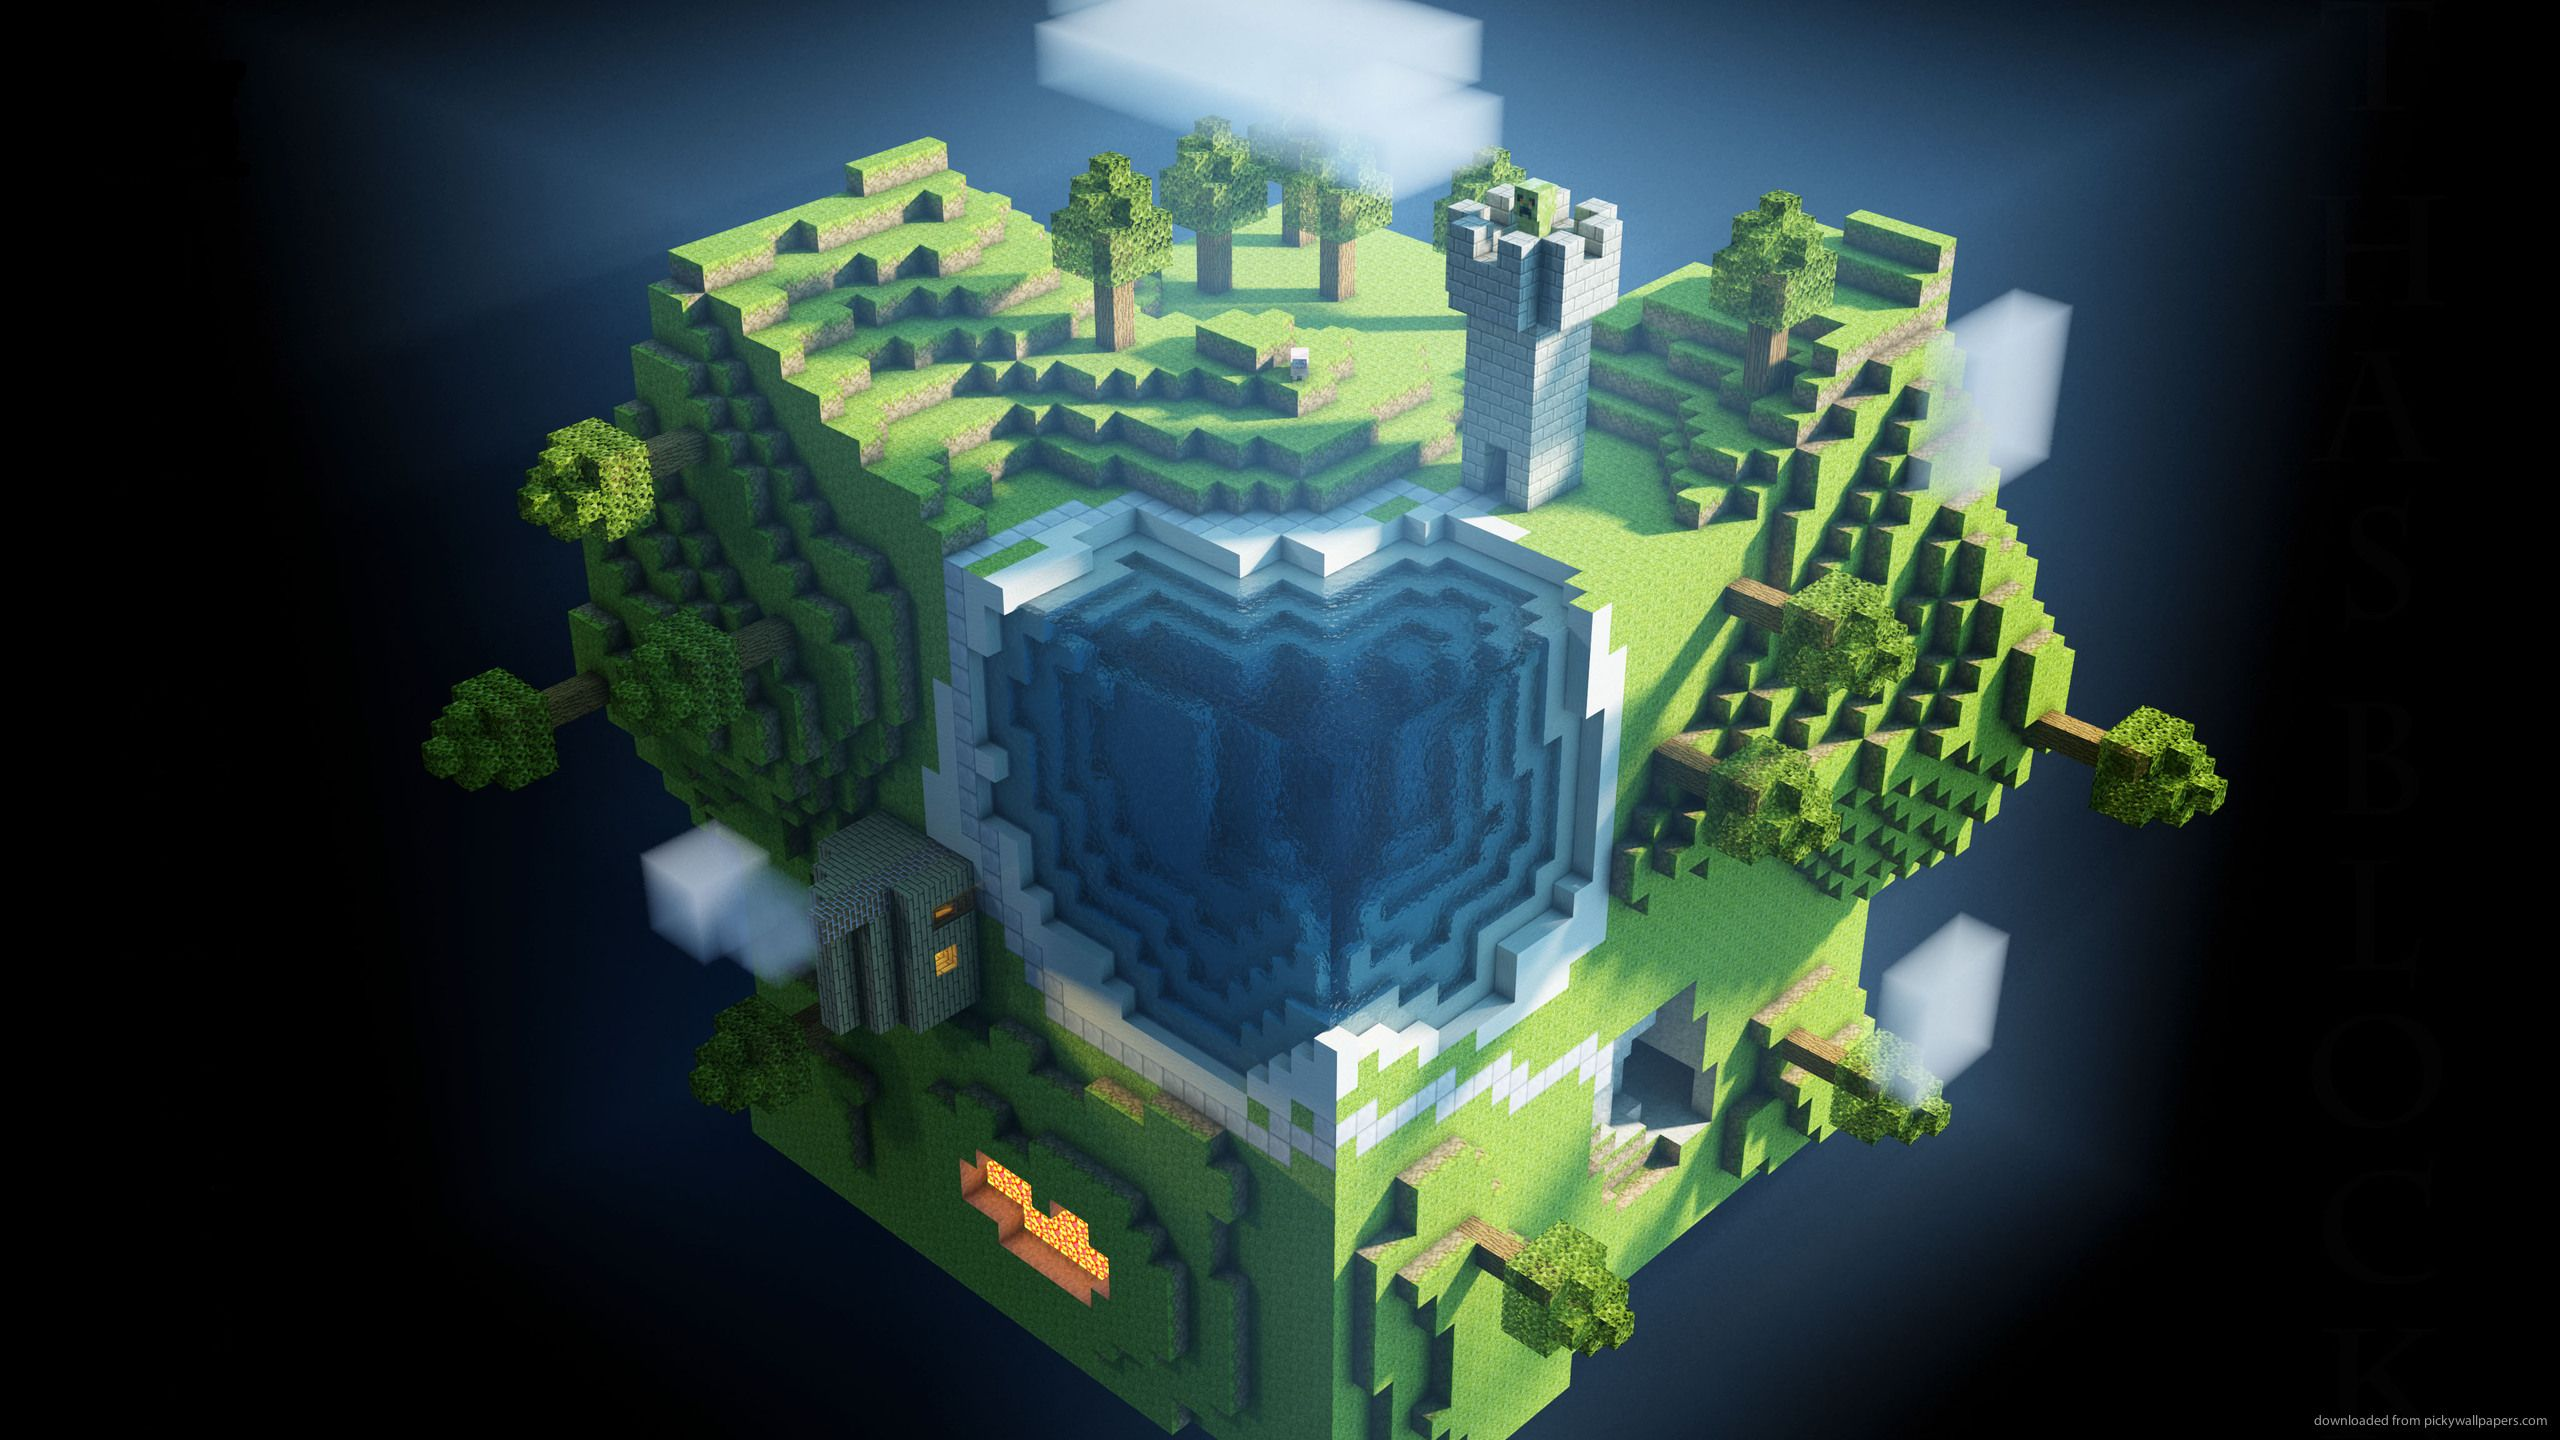 2560 X 1440 Minecraft Wallpapers Top Free 2560 X 1440